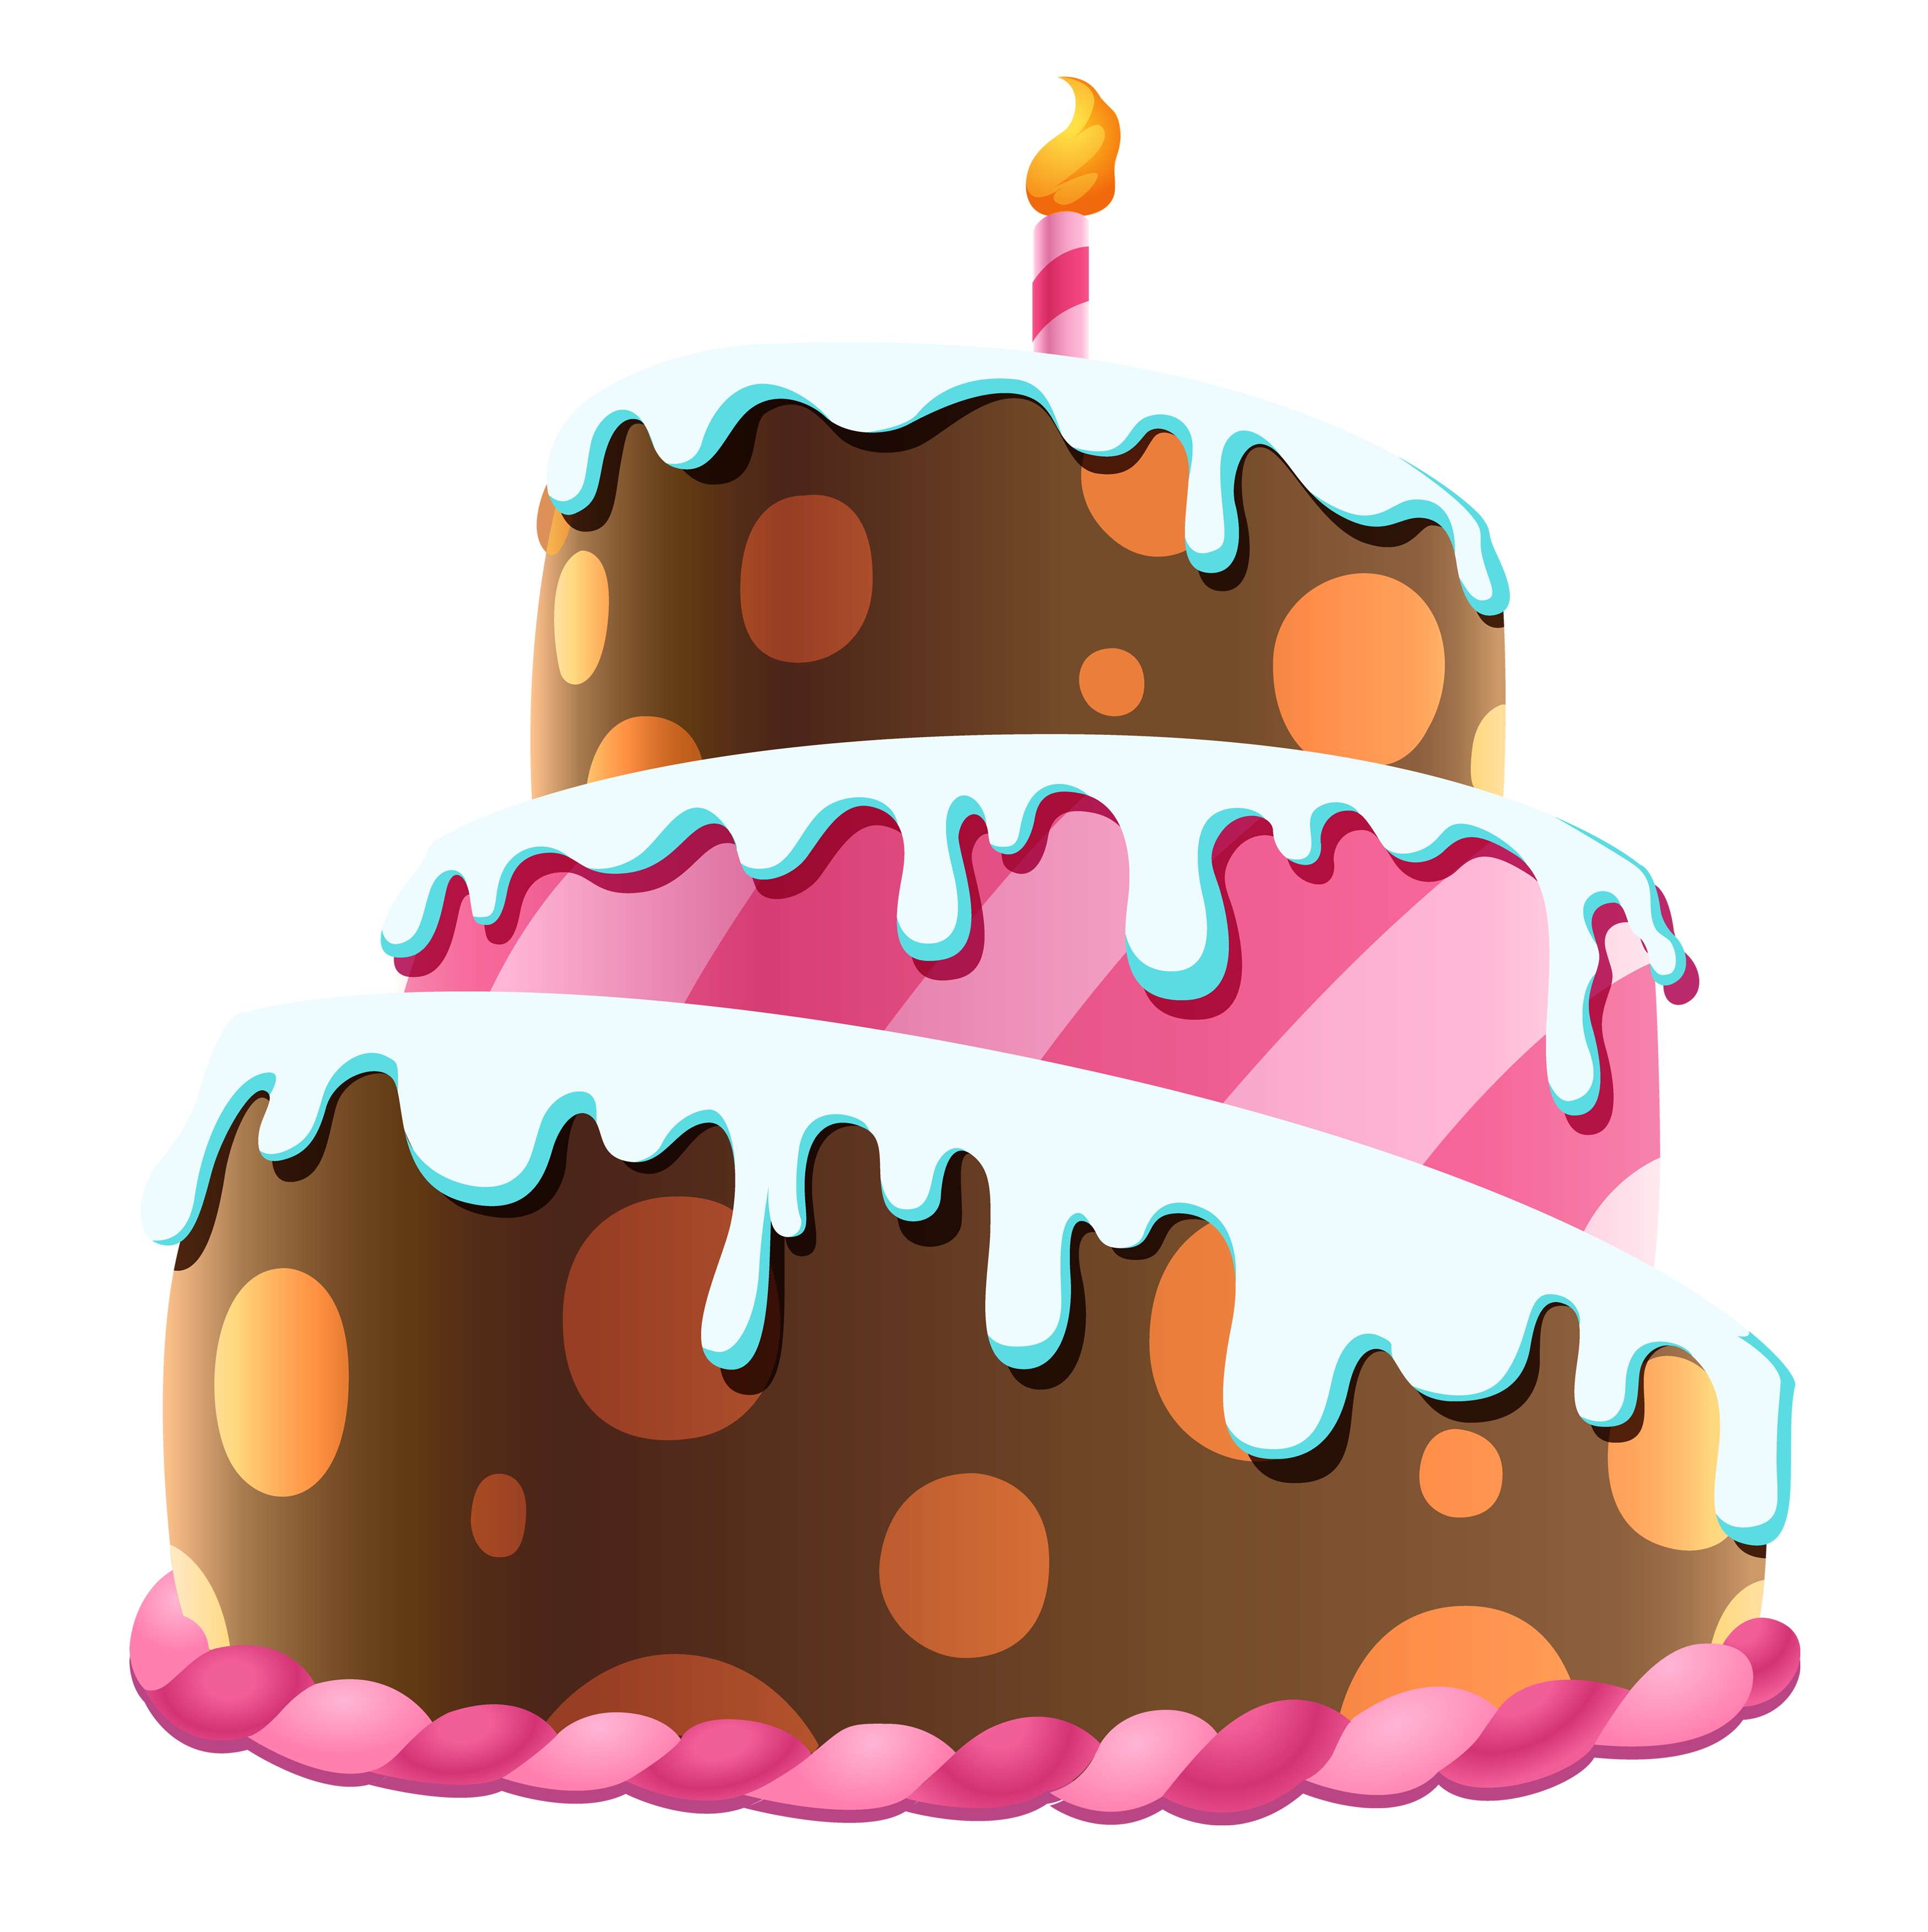 Birthday Cake PNG image - PngPix Birthday Cake Transparent Background